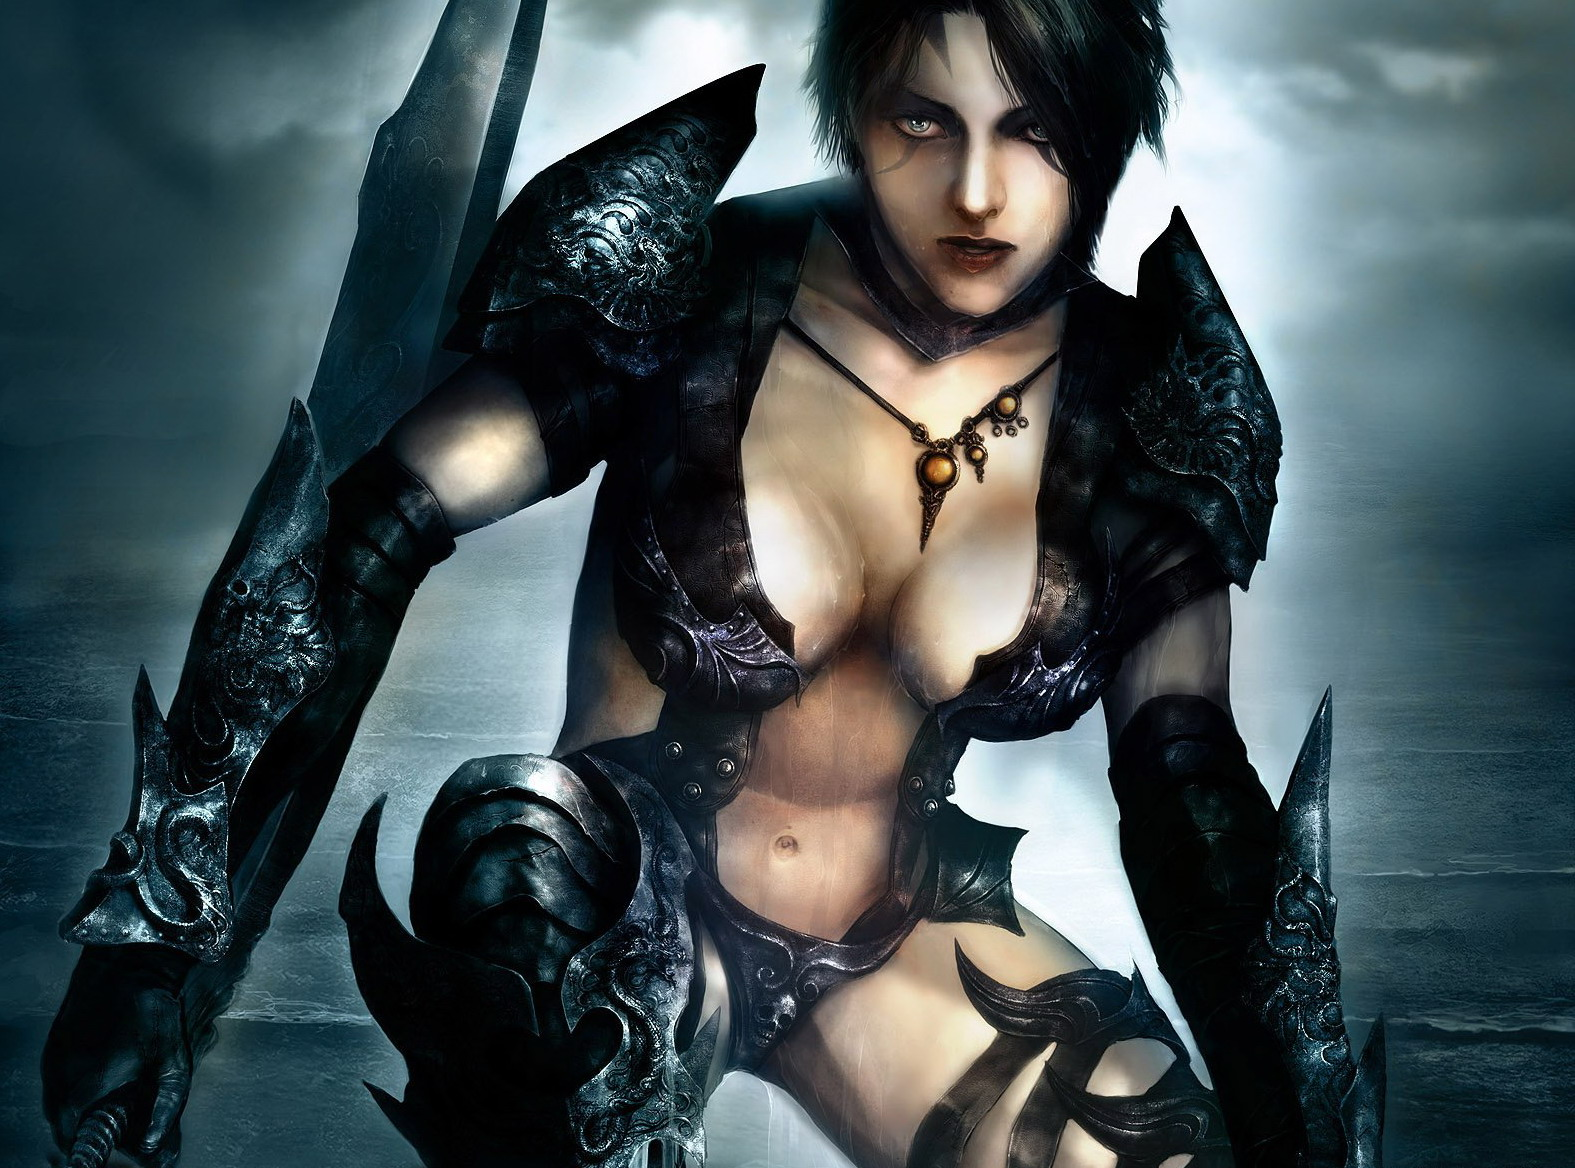 Girls in games naked prince of persia hentai fantasy porn star